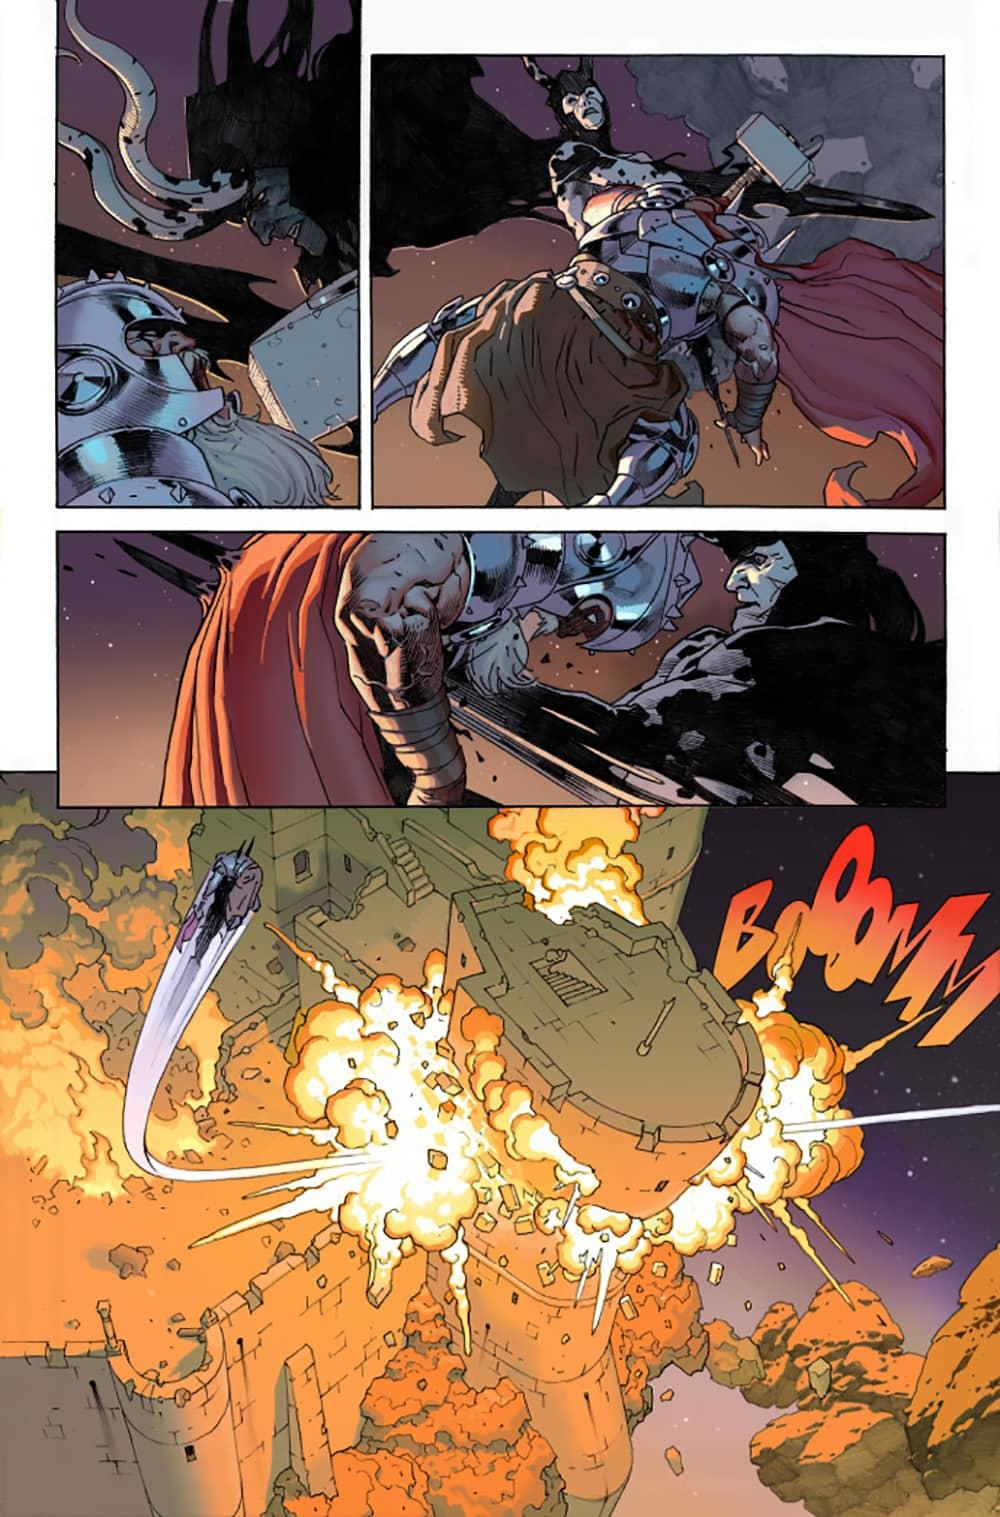 KING THOR #1 interiors by Esad Ribić and Ive Svorcina